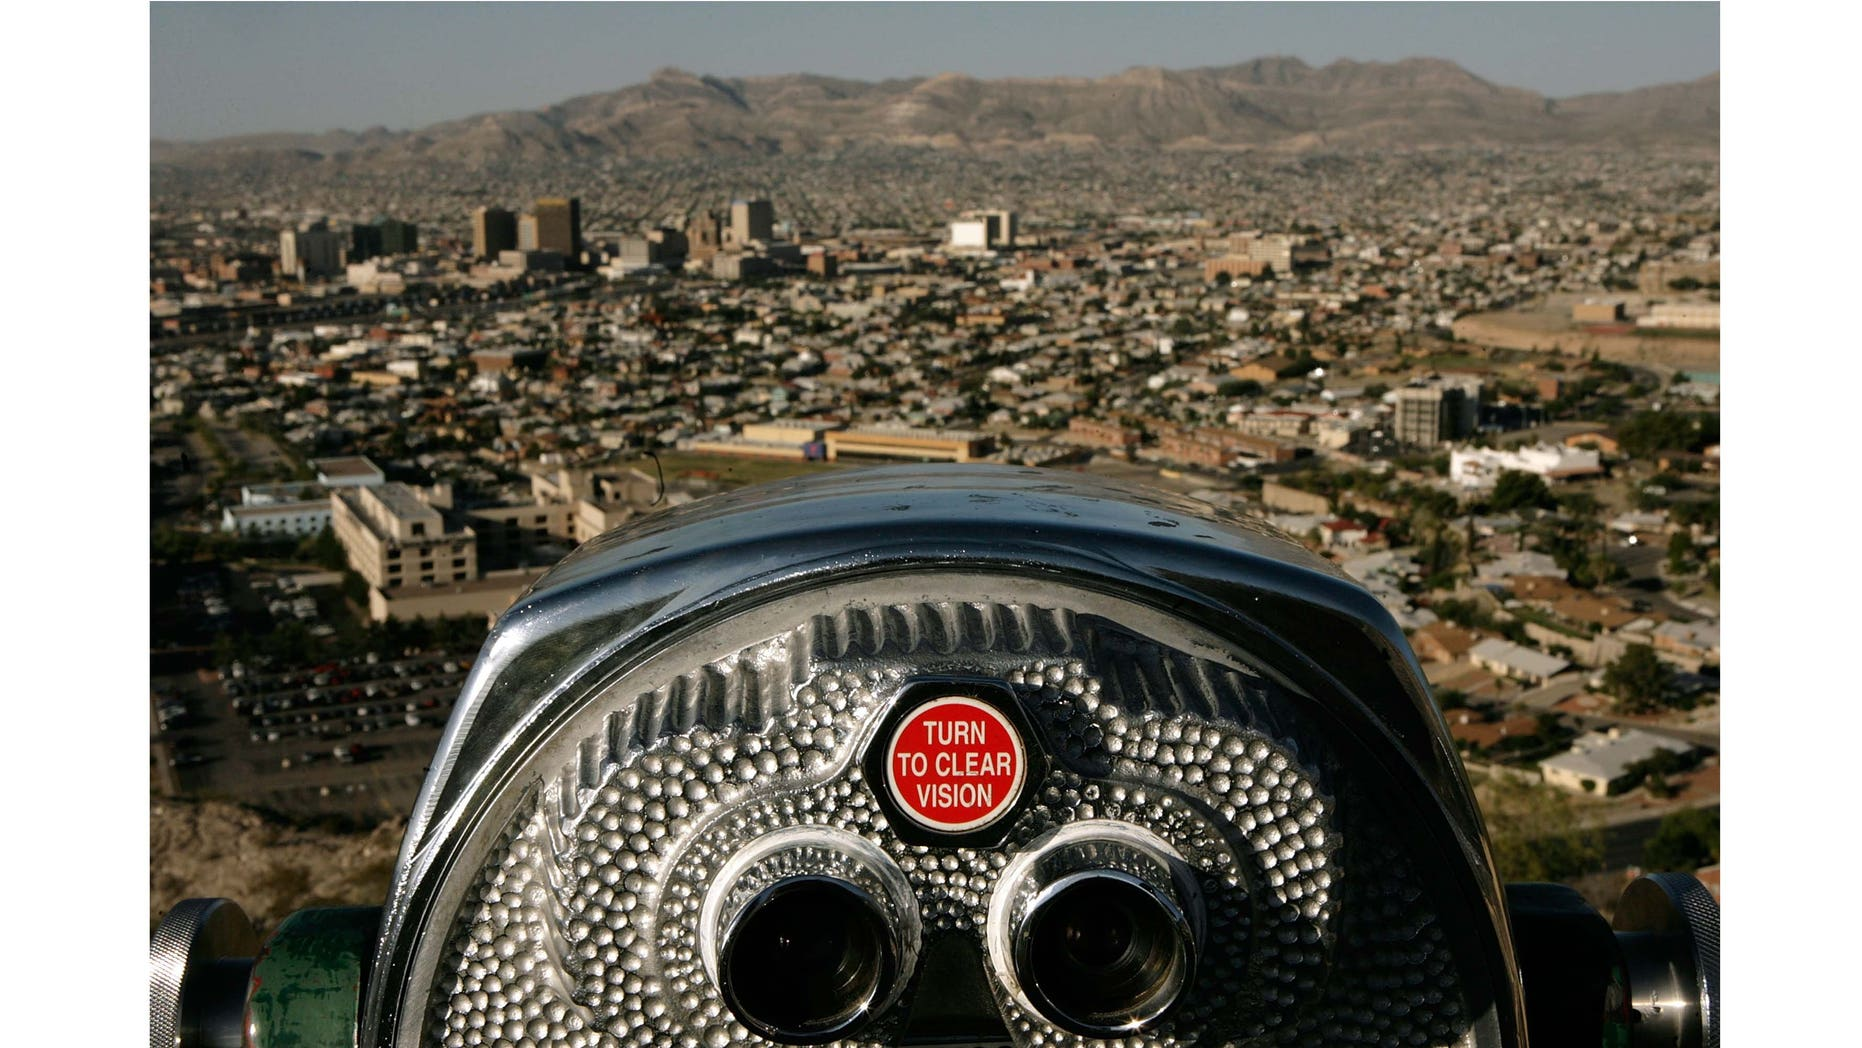 EL PASO, TX - JUNE 26:  Early morning light falls over the combined cities of El Paso, Texas, and Ciudad Juarez, Mexico, as seen from the Franklin Mountains June 26, 2007 in El Paso,Texas. Separated by the Rio Grande, the two cities have a combined population of more than 2 million people, with 80 percent of those people being native Spanish speakers. Since the attacks of September 11, 2001, enforcement of the U.S.-Mexico border by the Customs and Border Protection agency has increased, sharply reducing the illegal entry of people and drugs into the United States. (Photo by Chip Somodevilla/Getty Images)